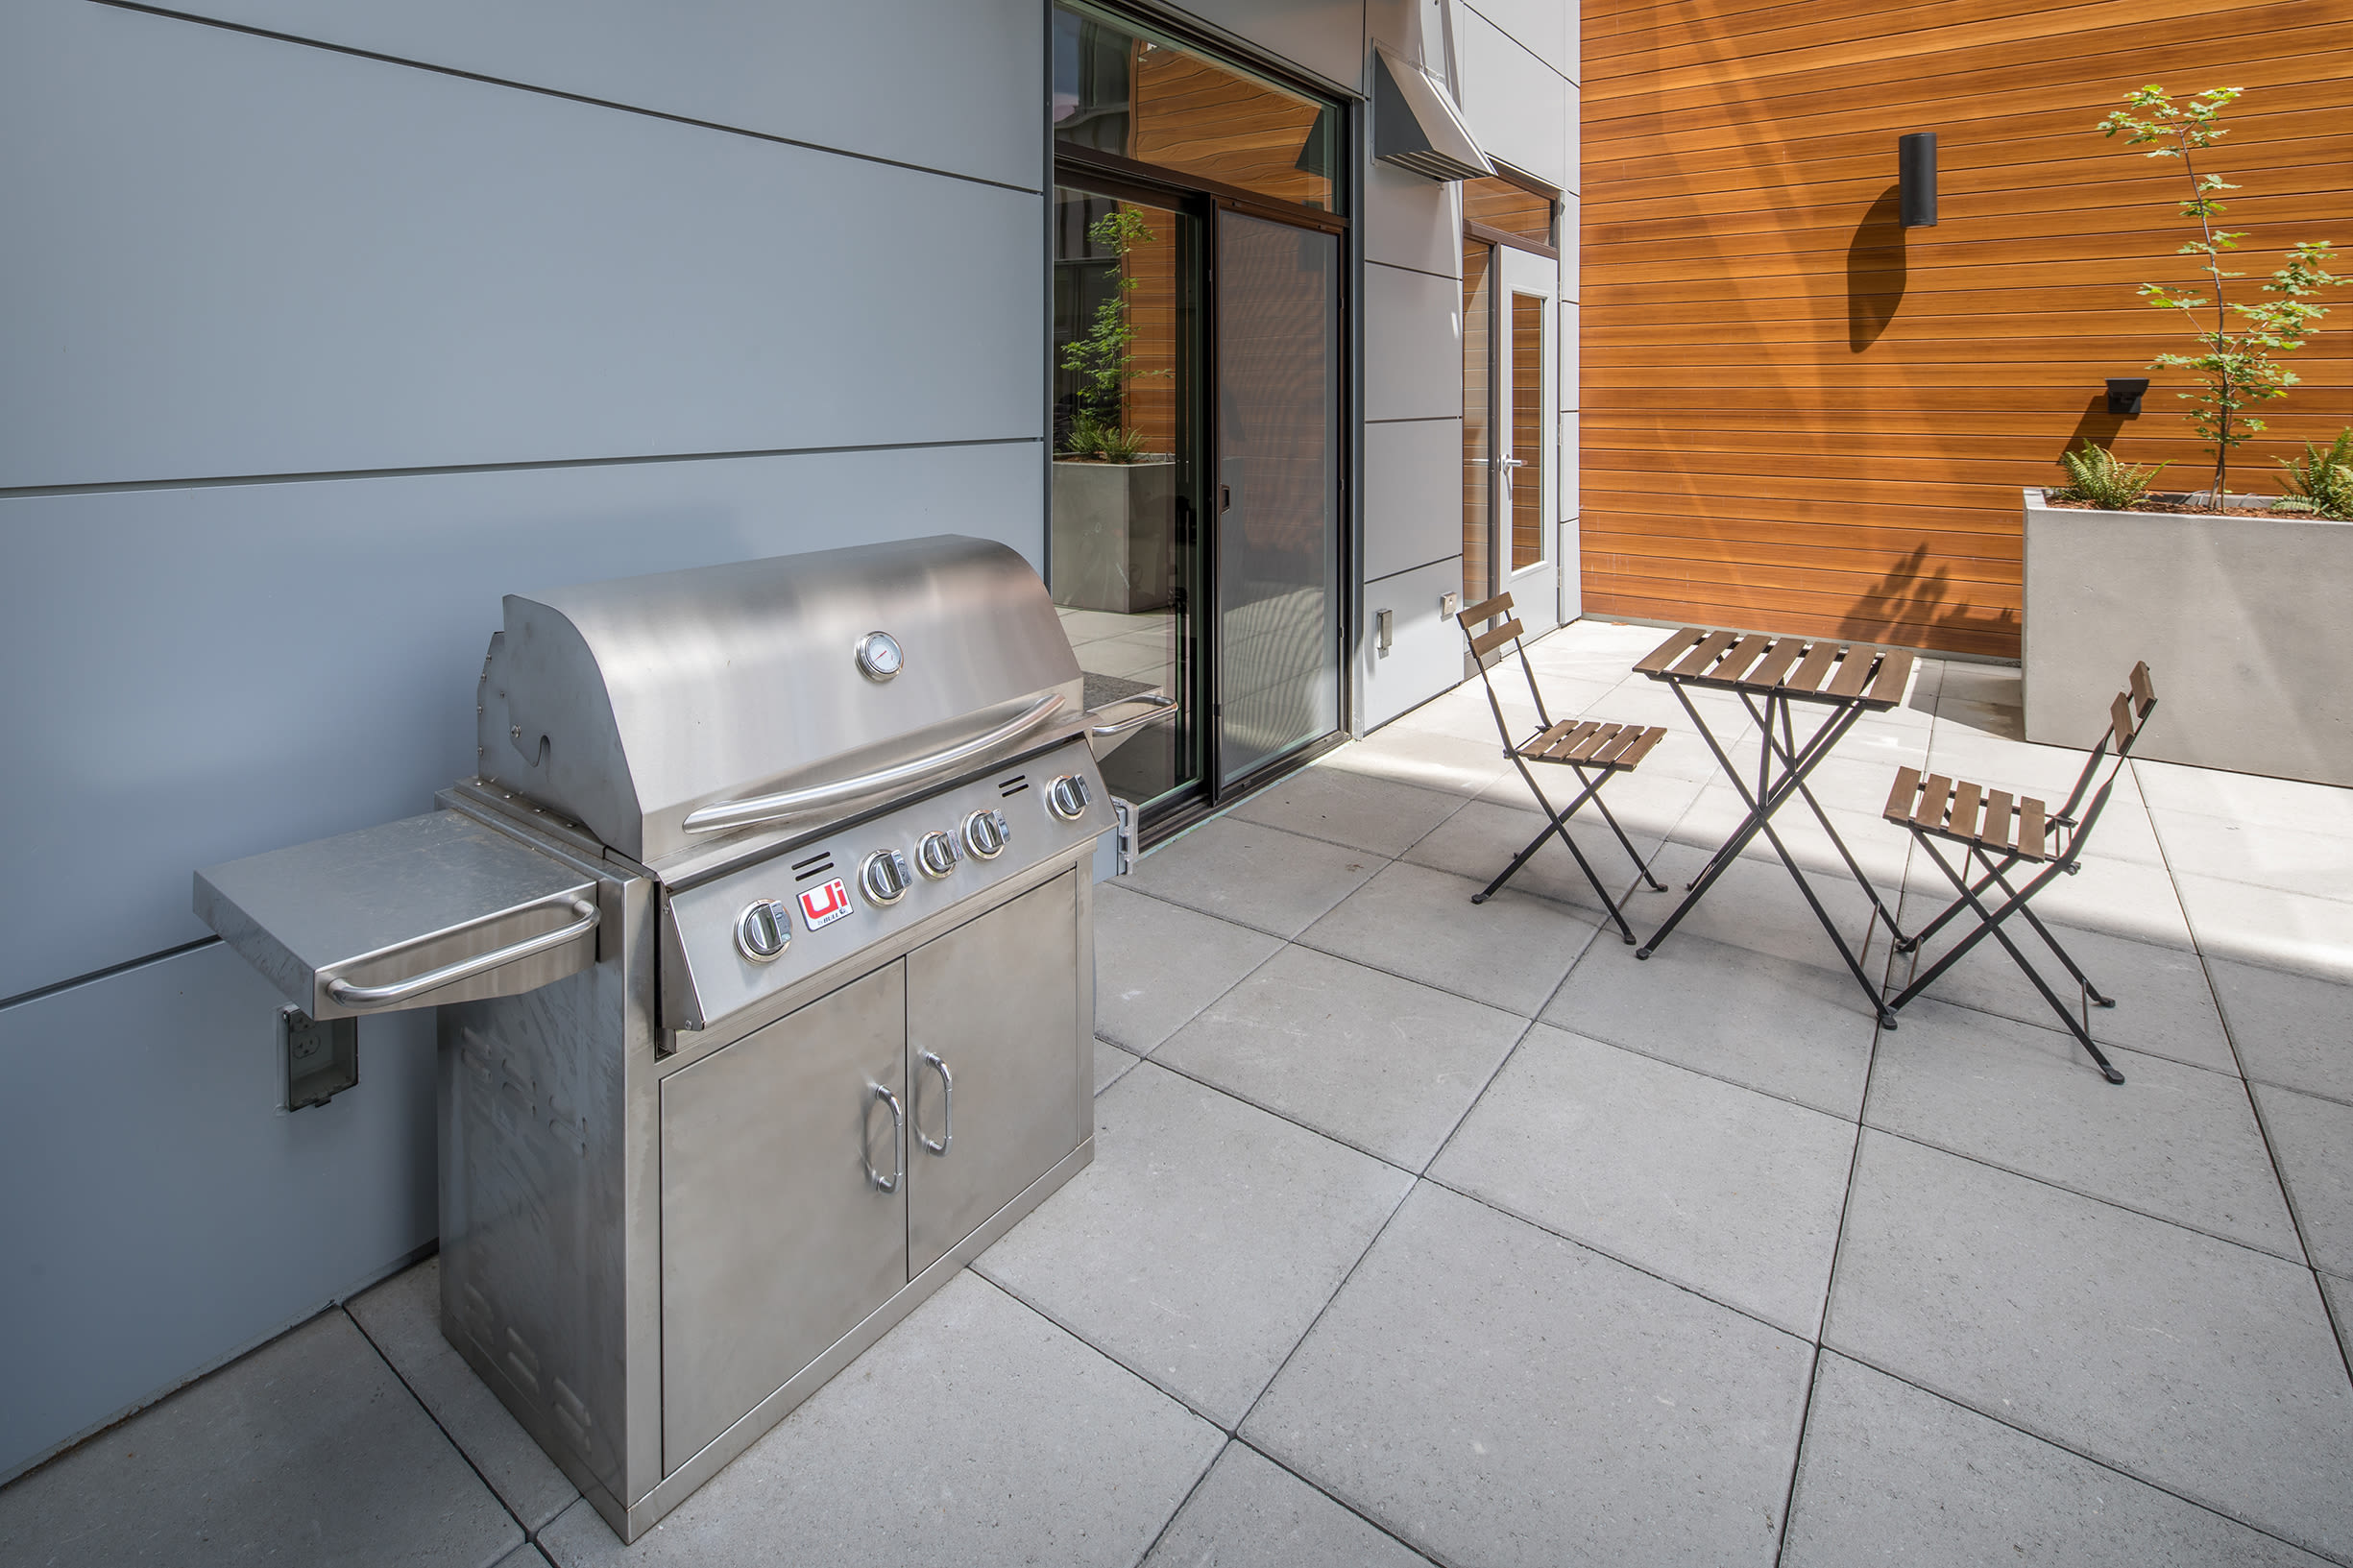 Patio grill at Ascend in Portland, OR